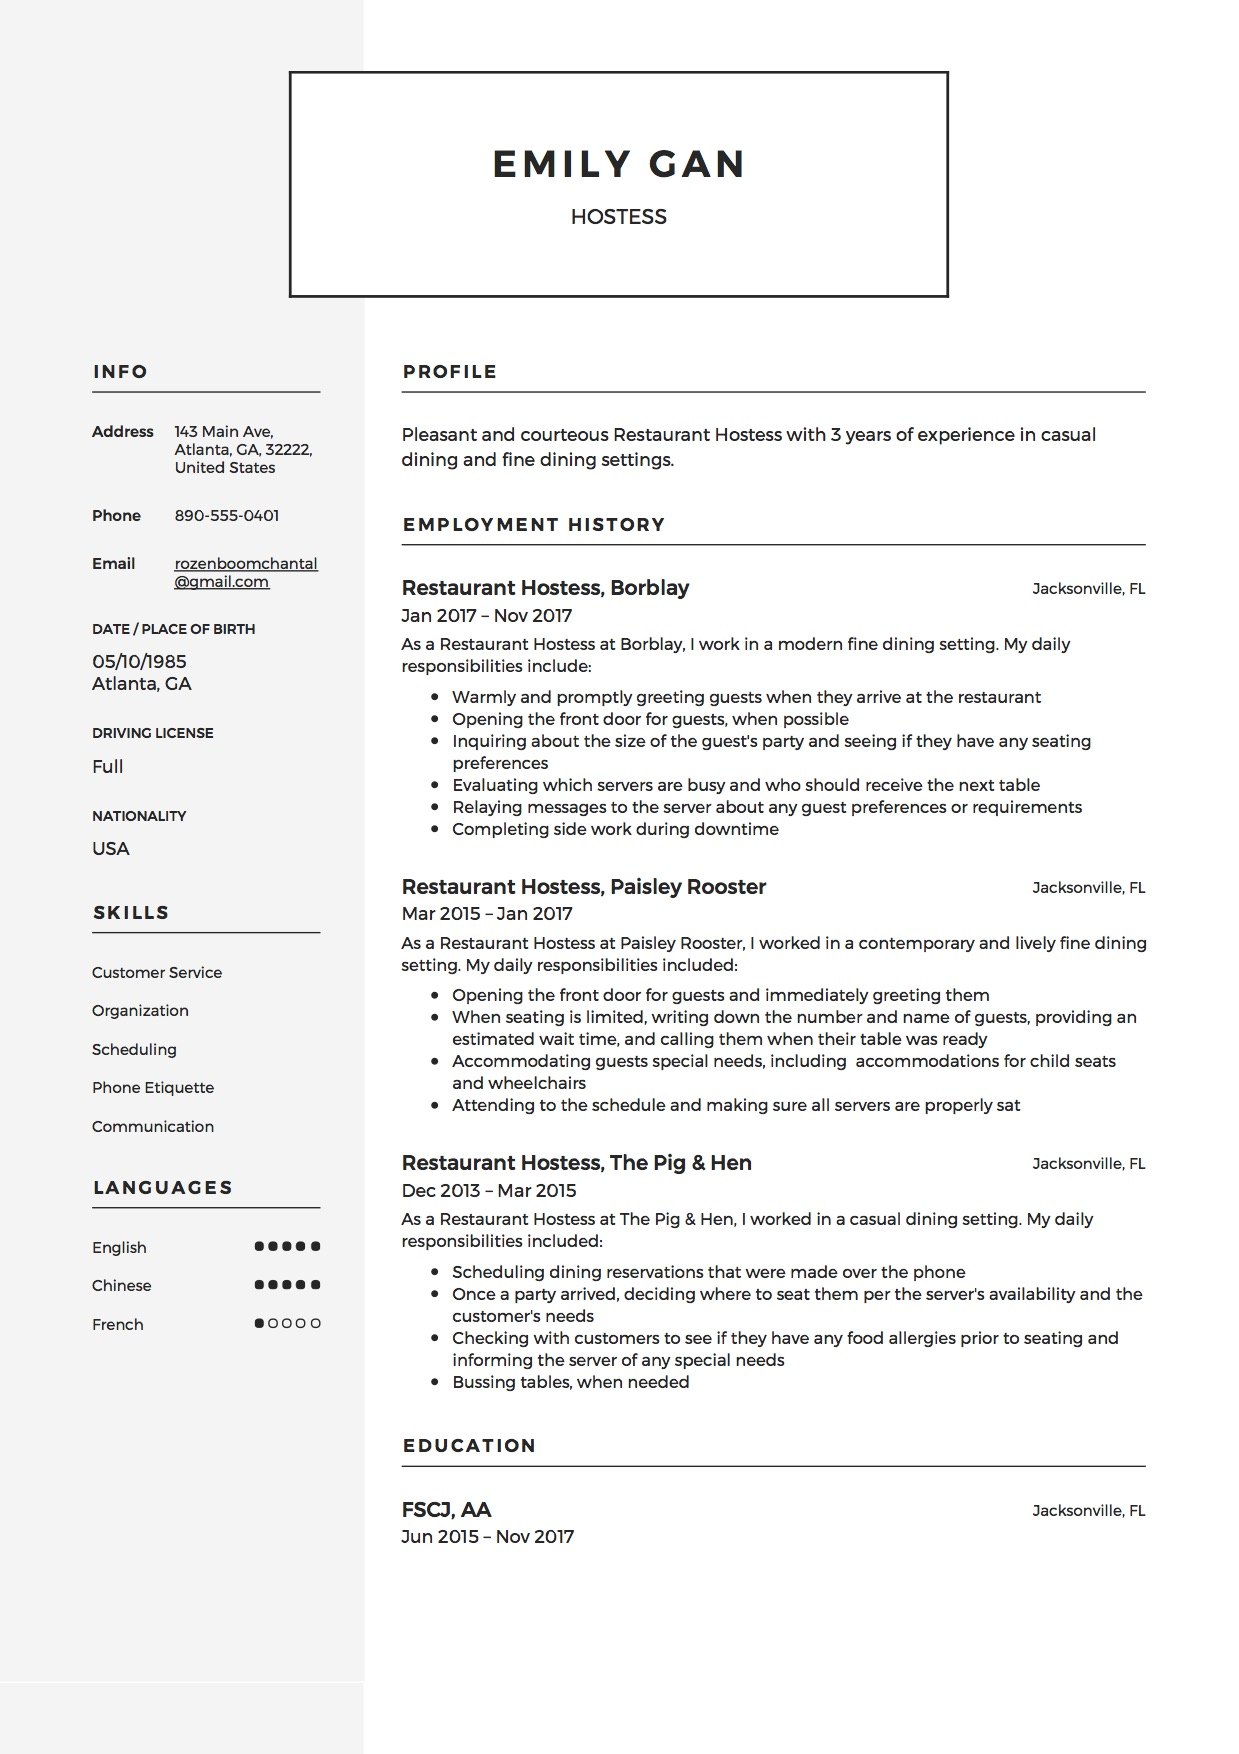 12 Restaurant Hostess Resume Sample S 2018 Free Downloads